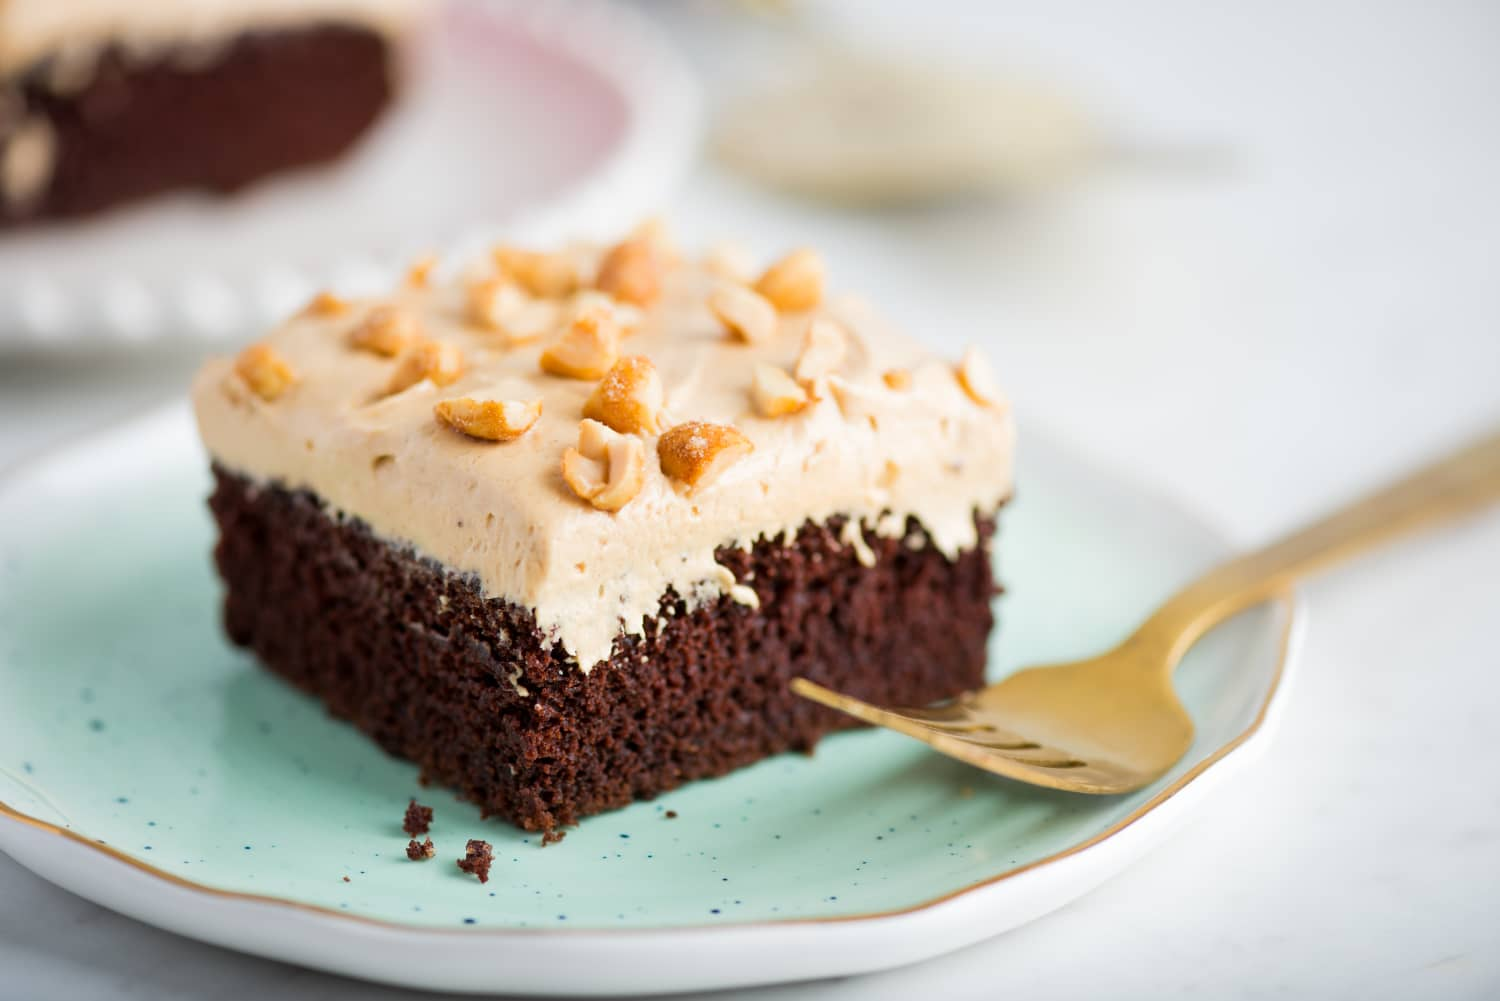 Recipe: Chocolate Sheet Cake with Honey-Roasted Peanut Butter Frosting